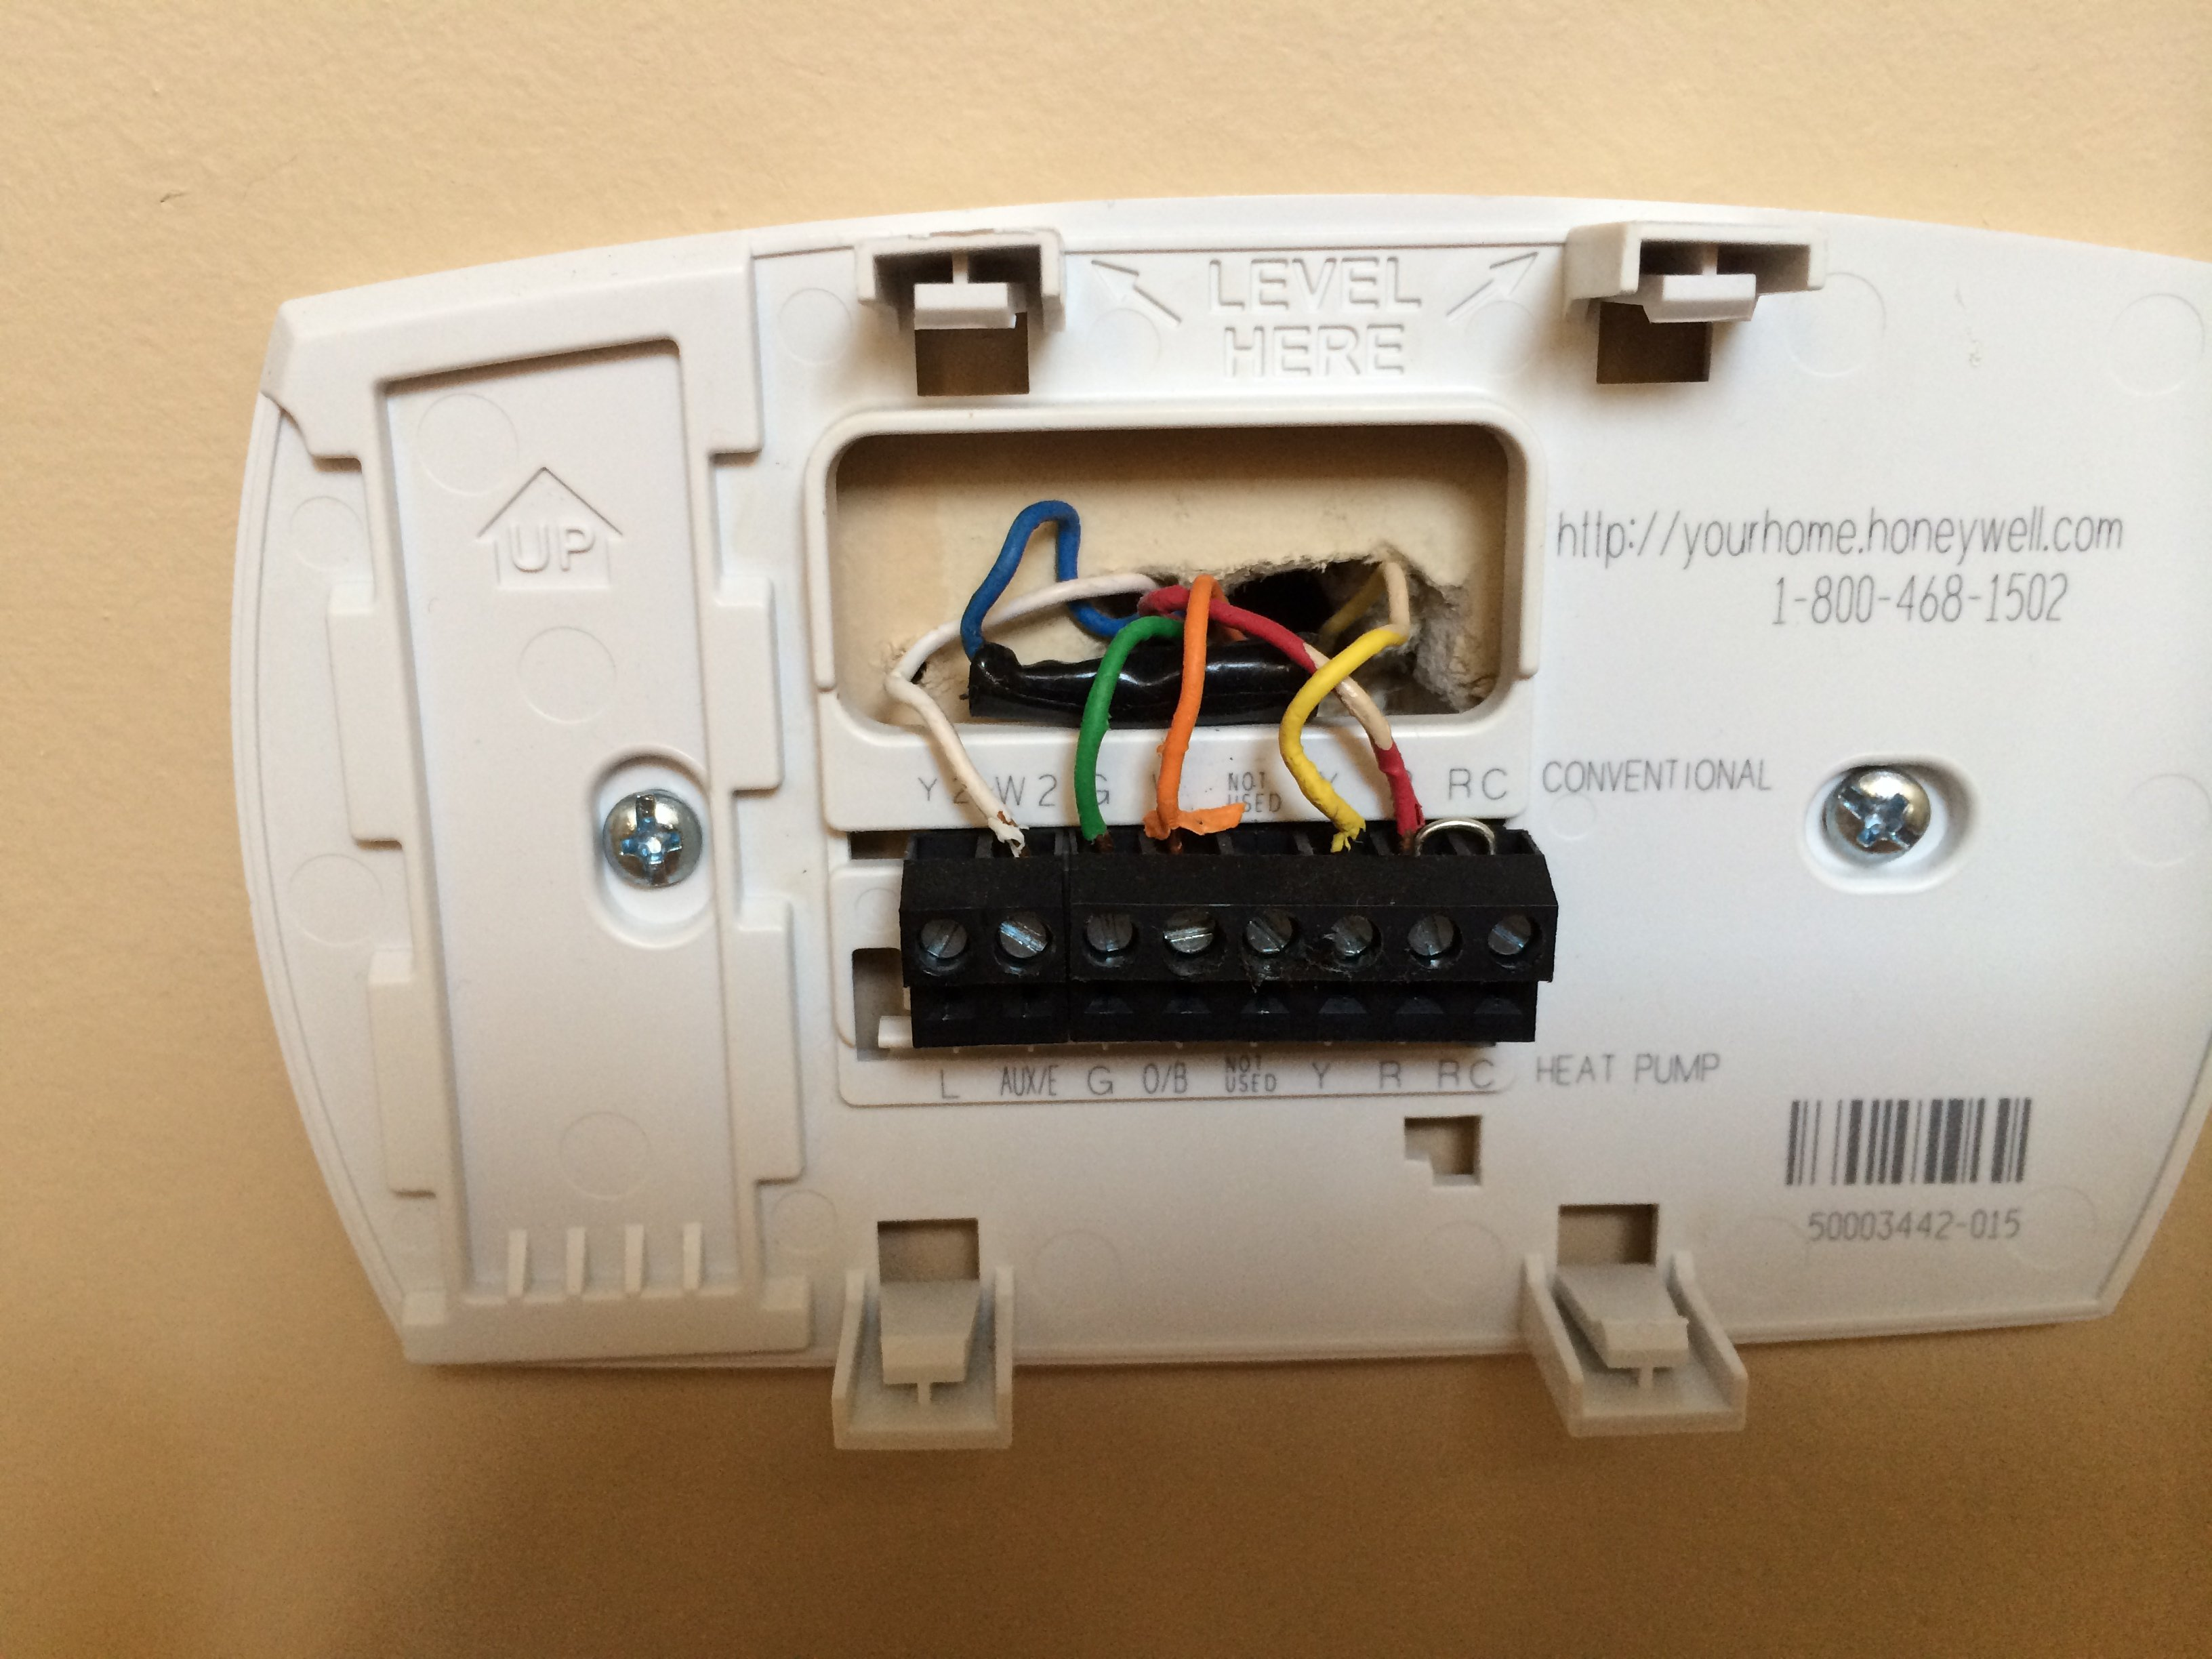 Wiring Diagram For Honeywell Thermostat Th5110d1006 : Honeywell th d wiring diagram